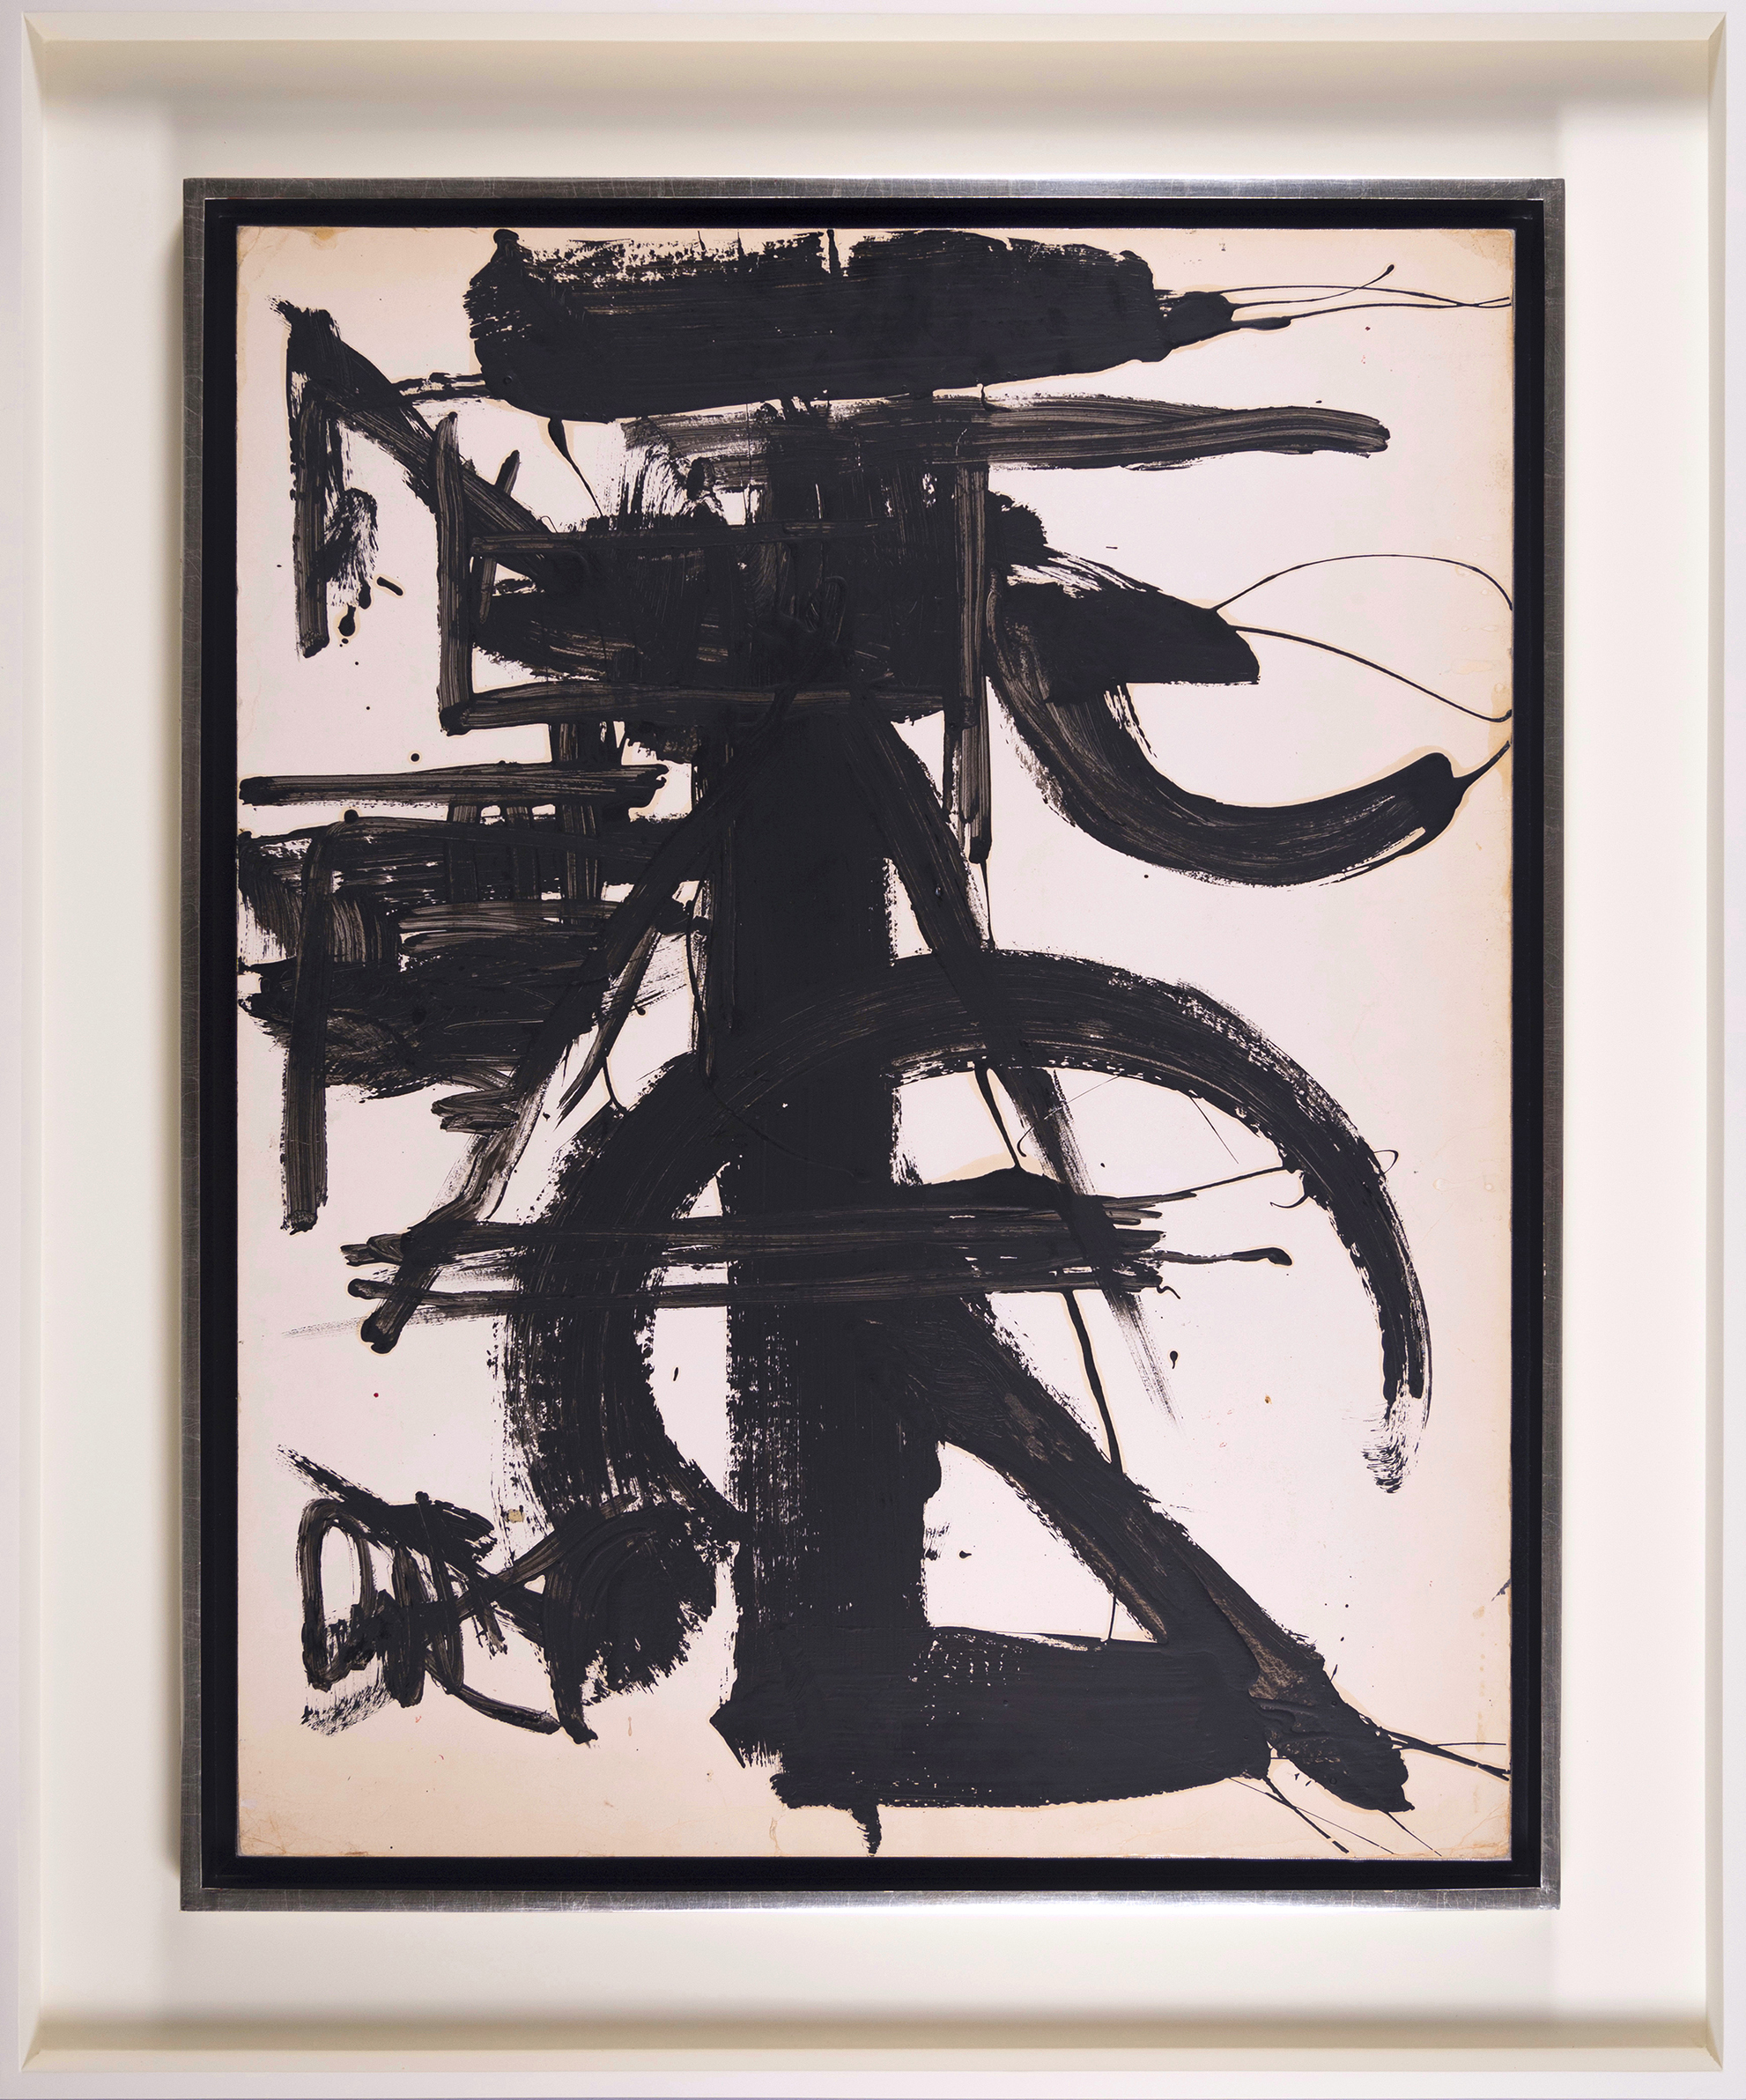 Black & White with Abstract,   Enamel on oaktag, c. 1970, 28 x 22 inches